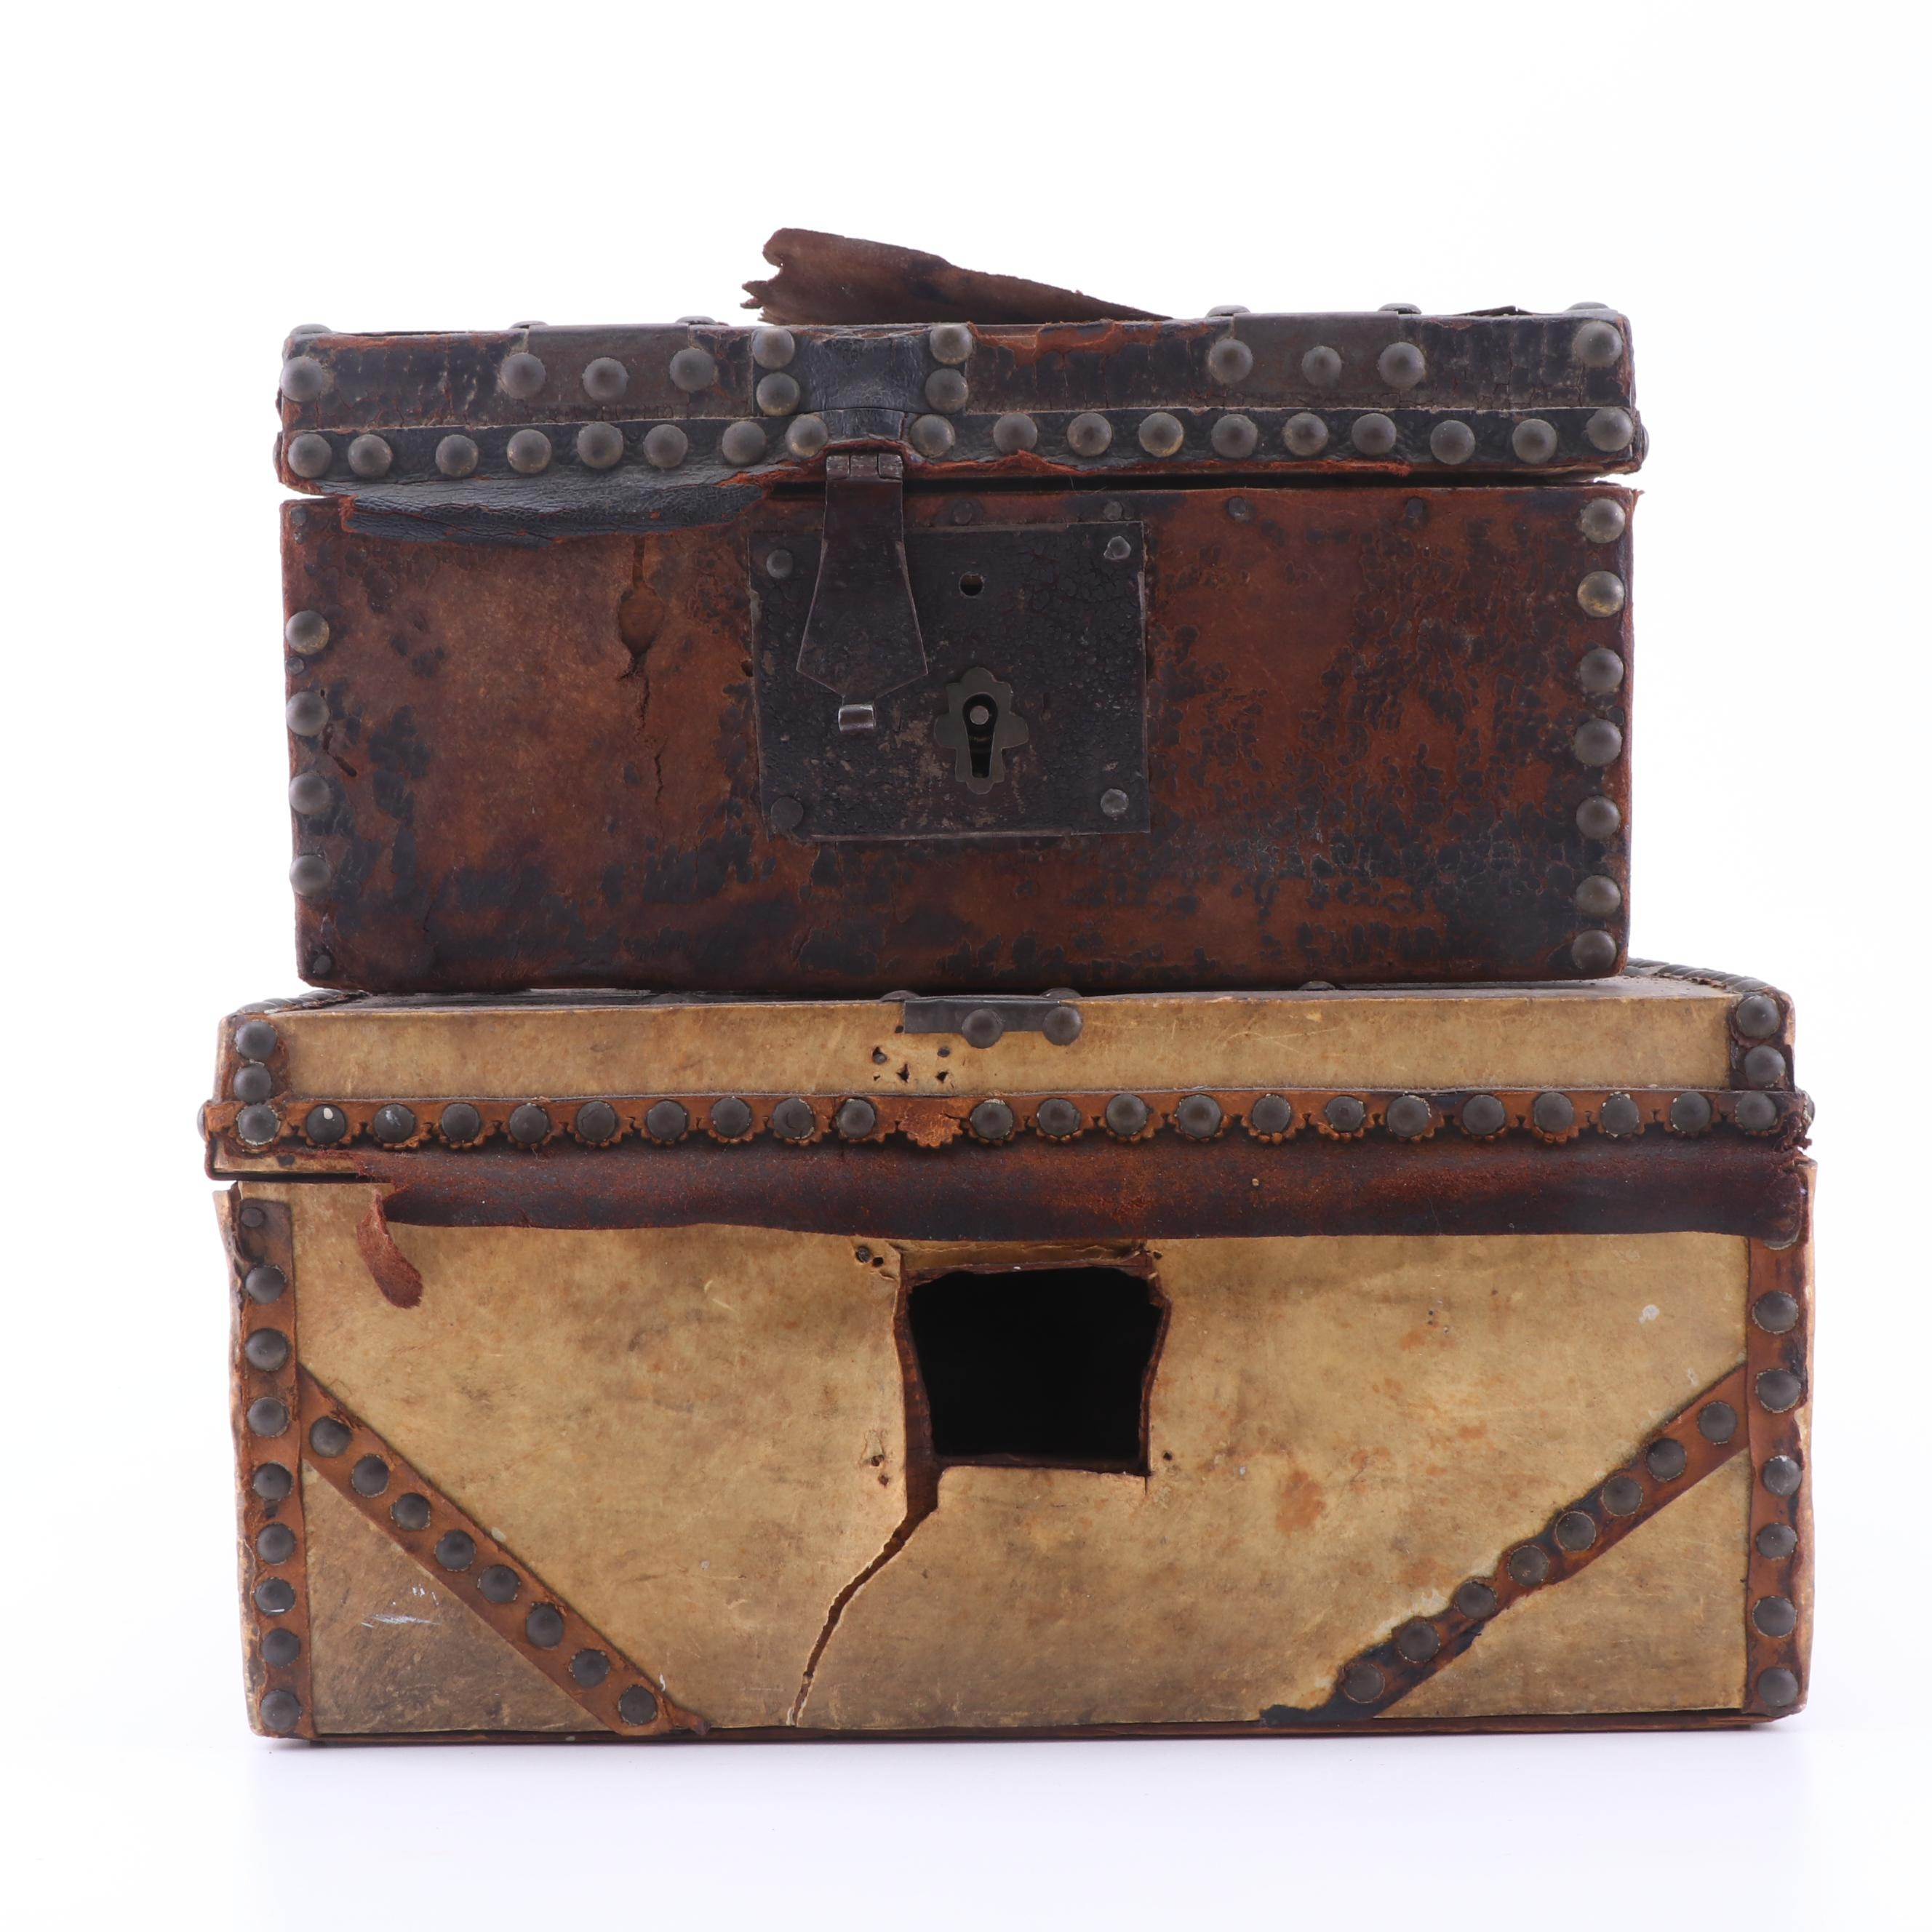 Antique Trunk Boxes by Robert Burr and Thaddeus Osgood